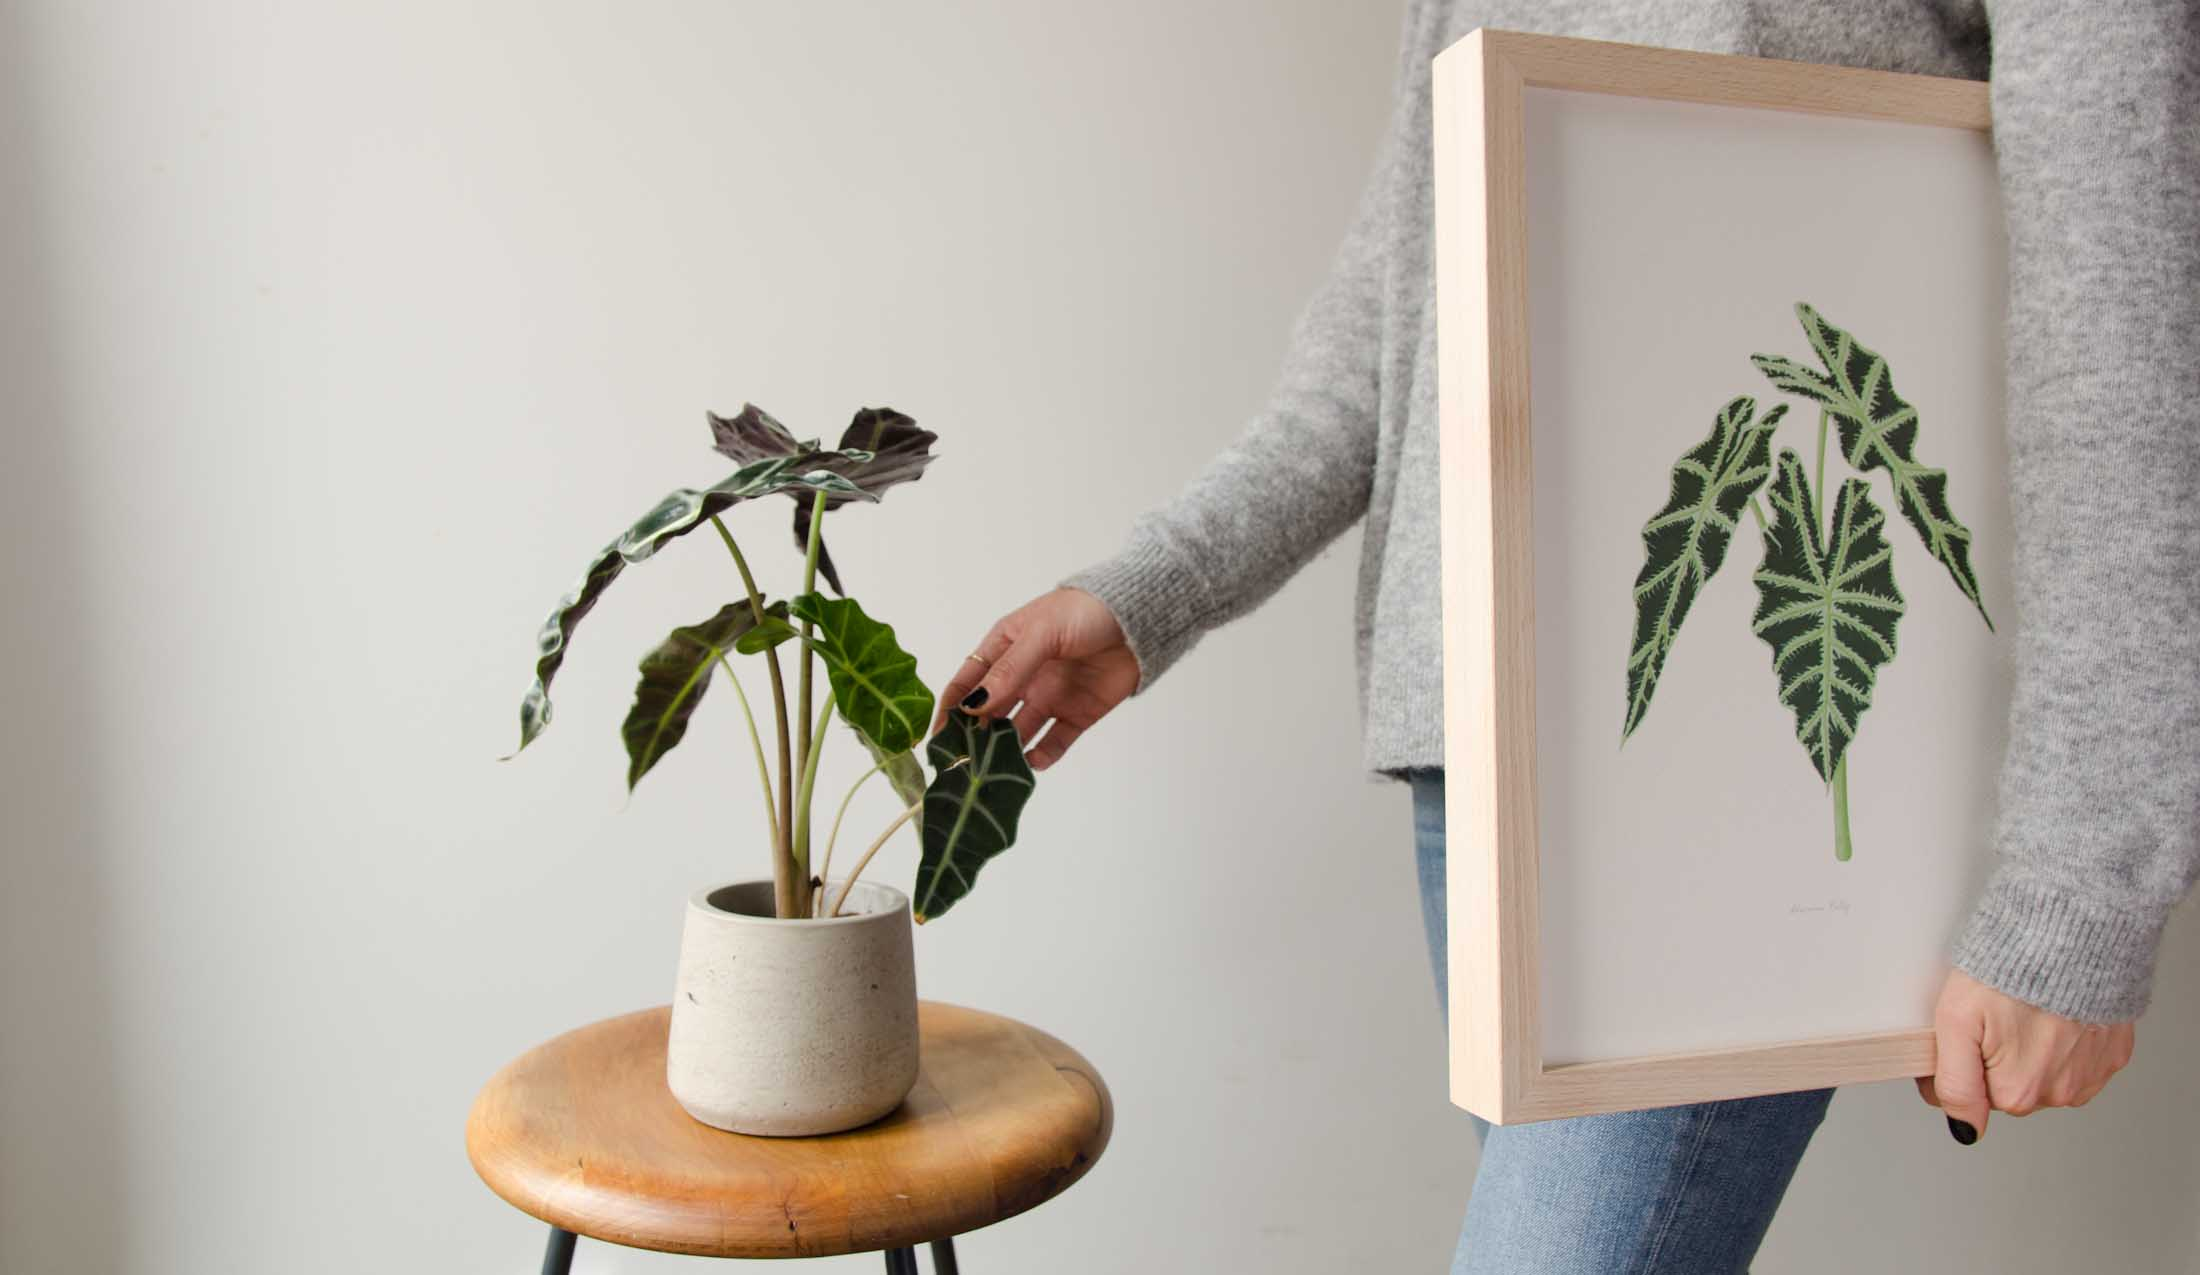 Regalos Originales 2019 - Save the date projects the botanical nook plantas interior-2